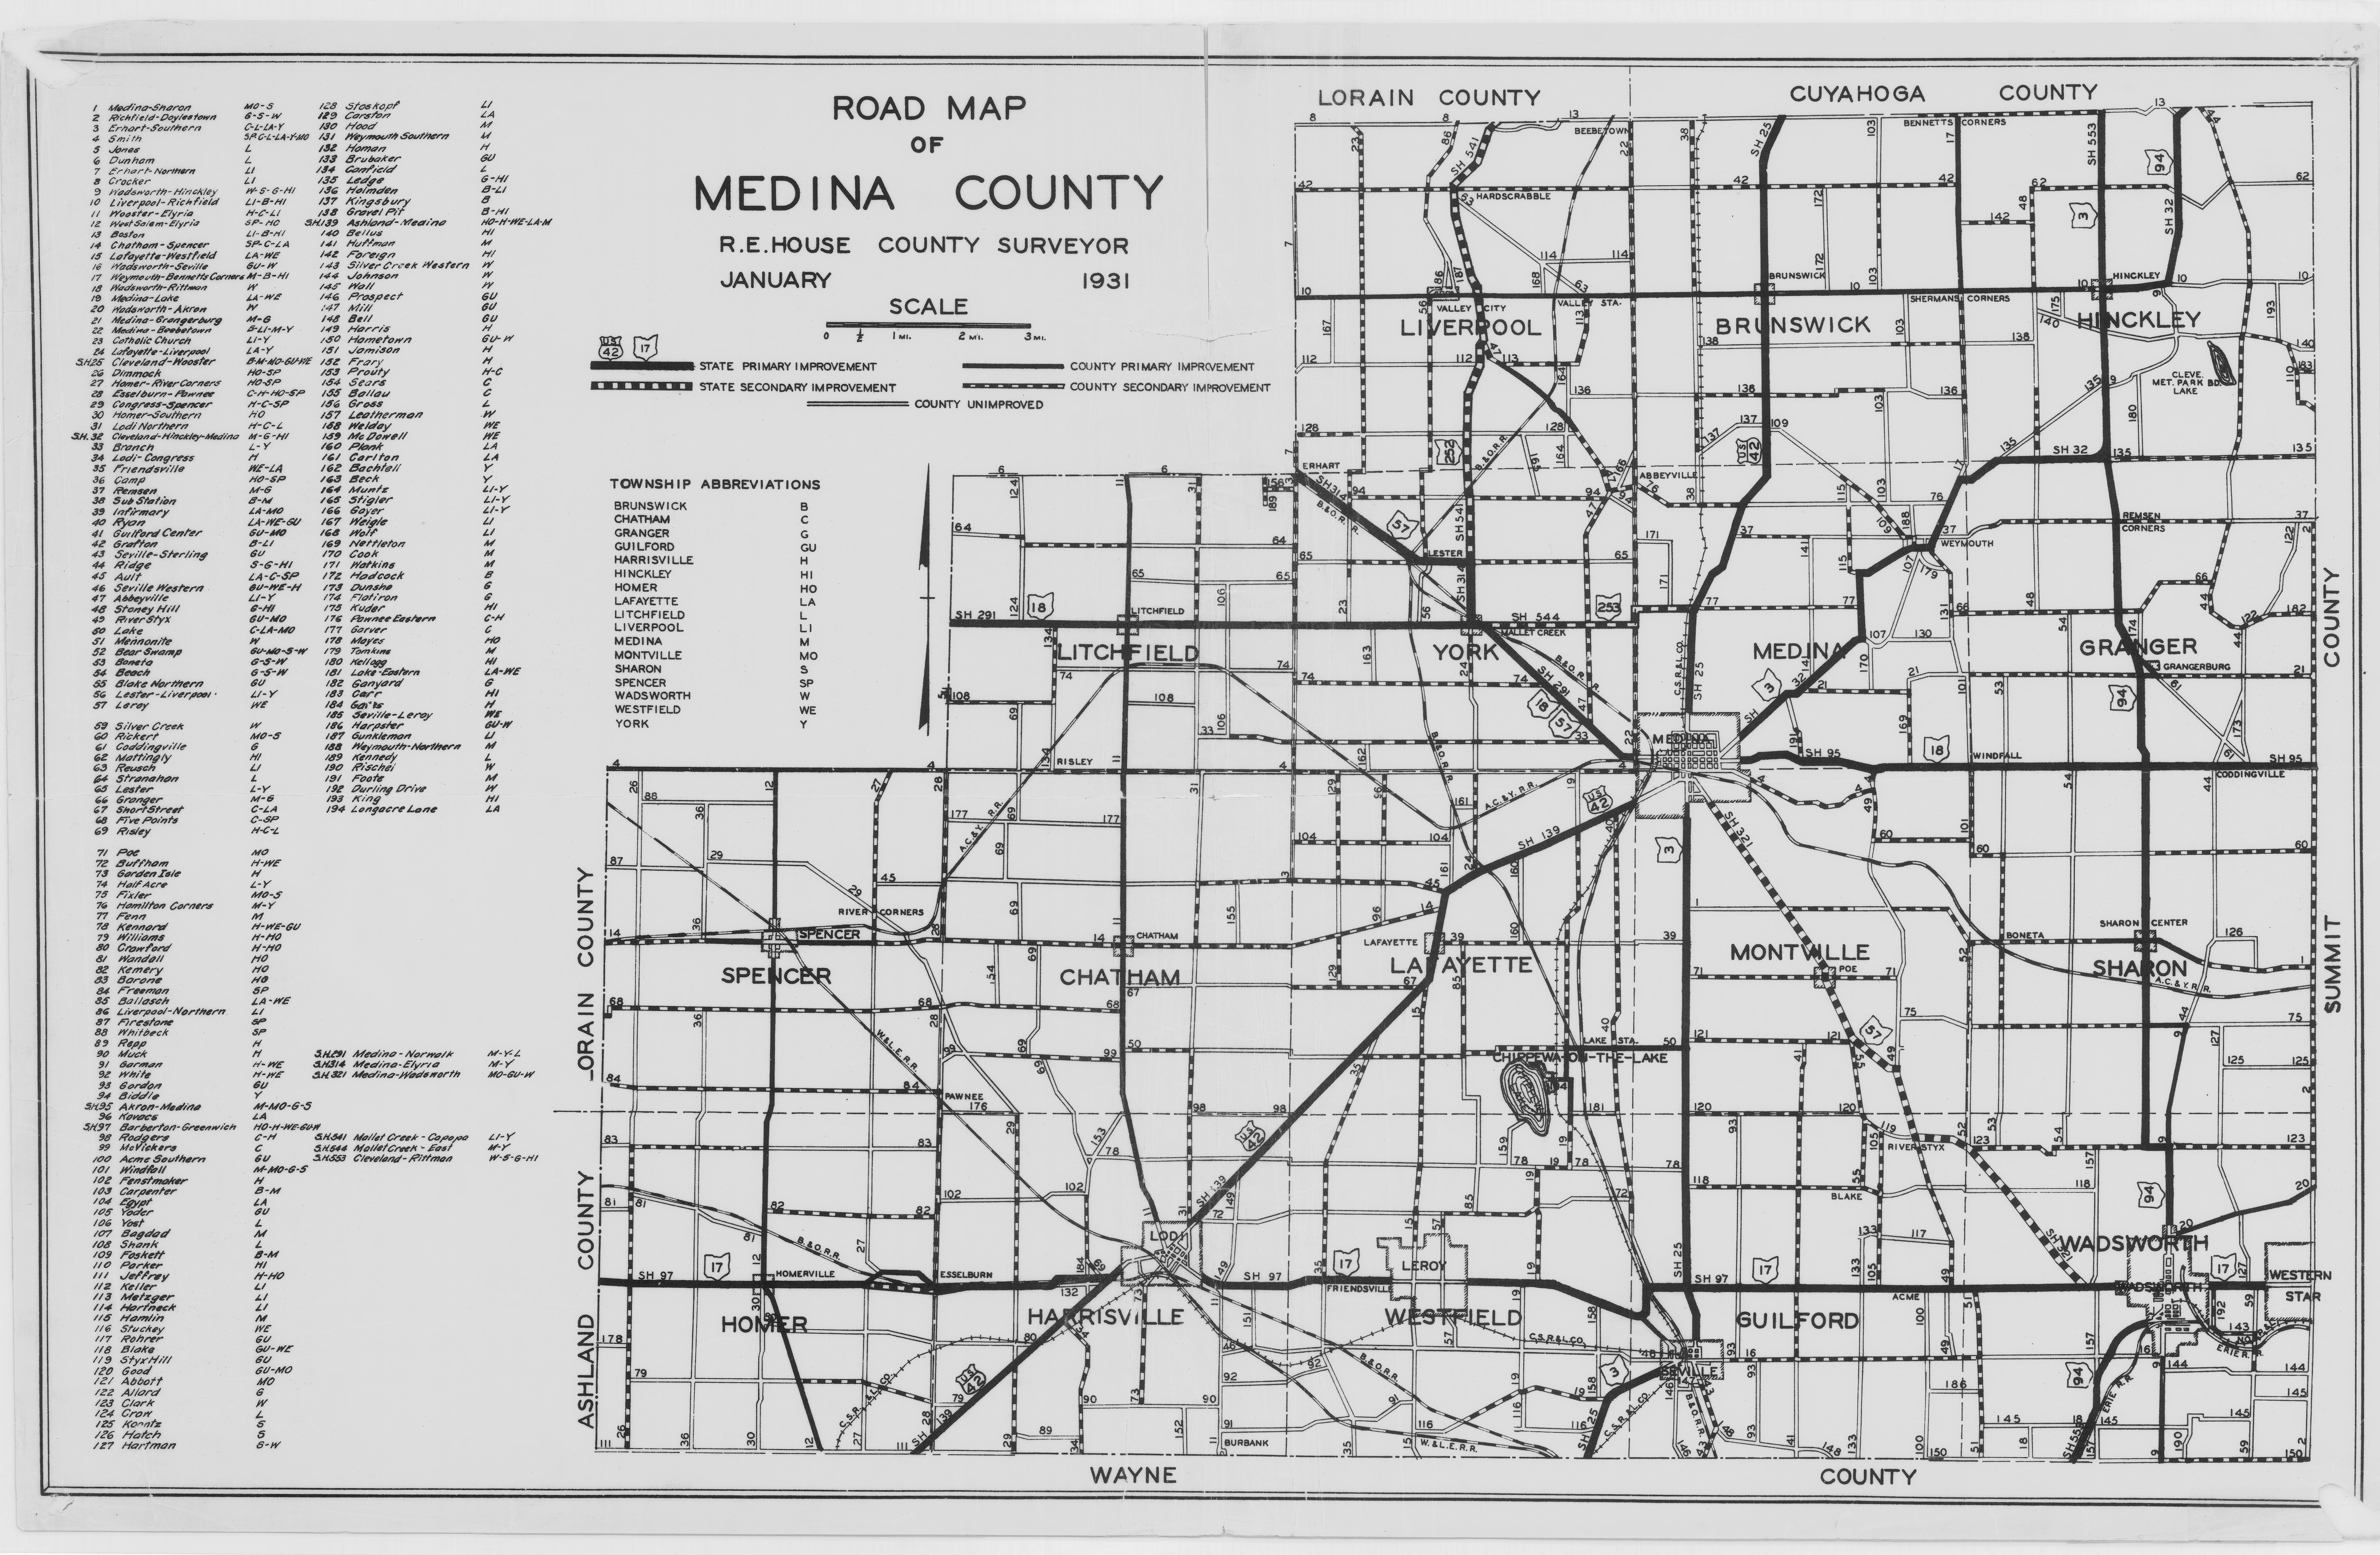 Medina County Engineer - Ohio road map